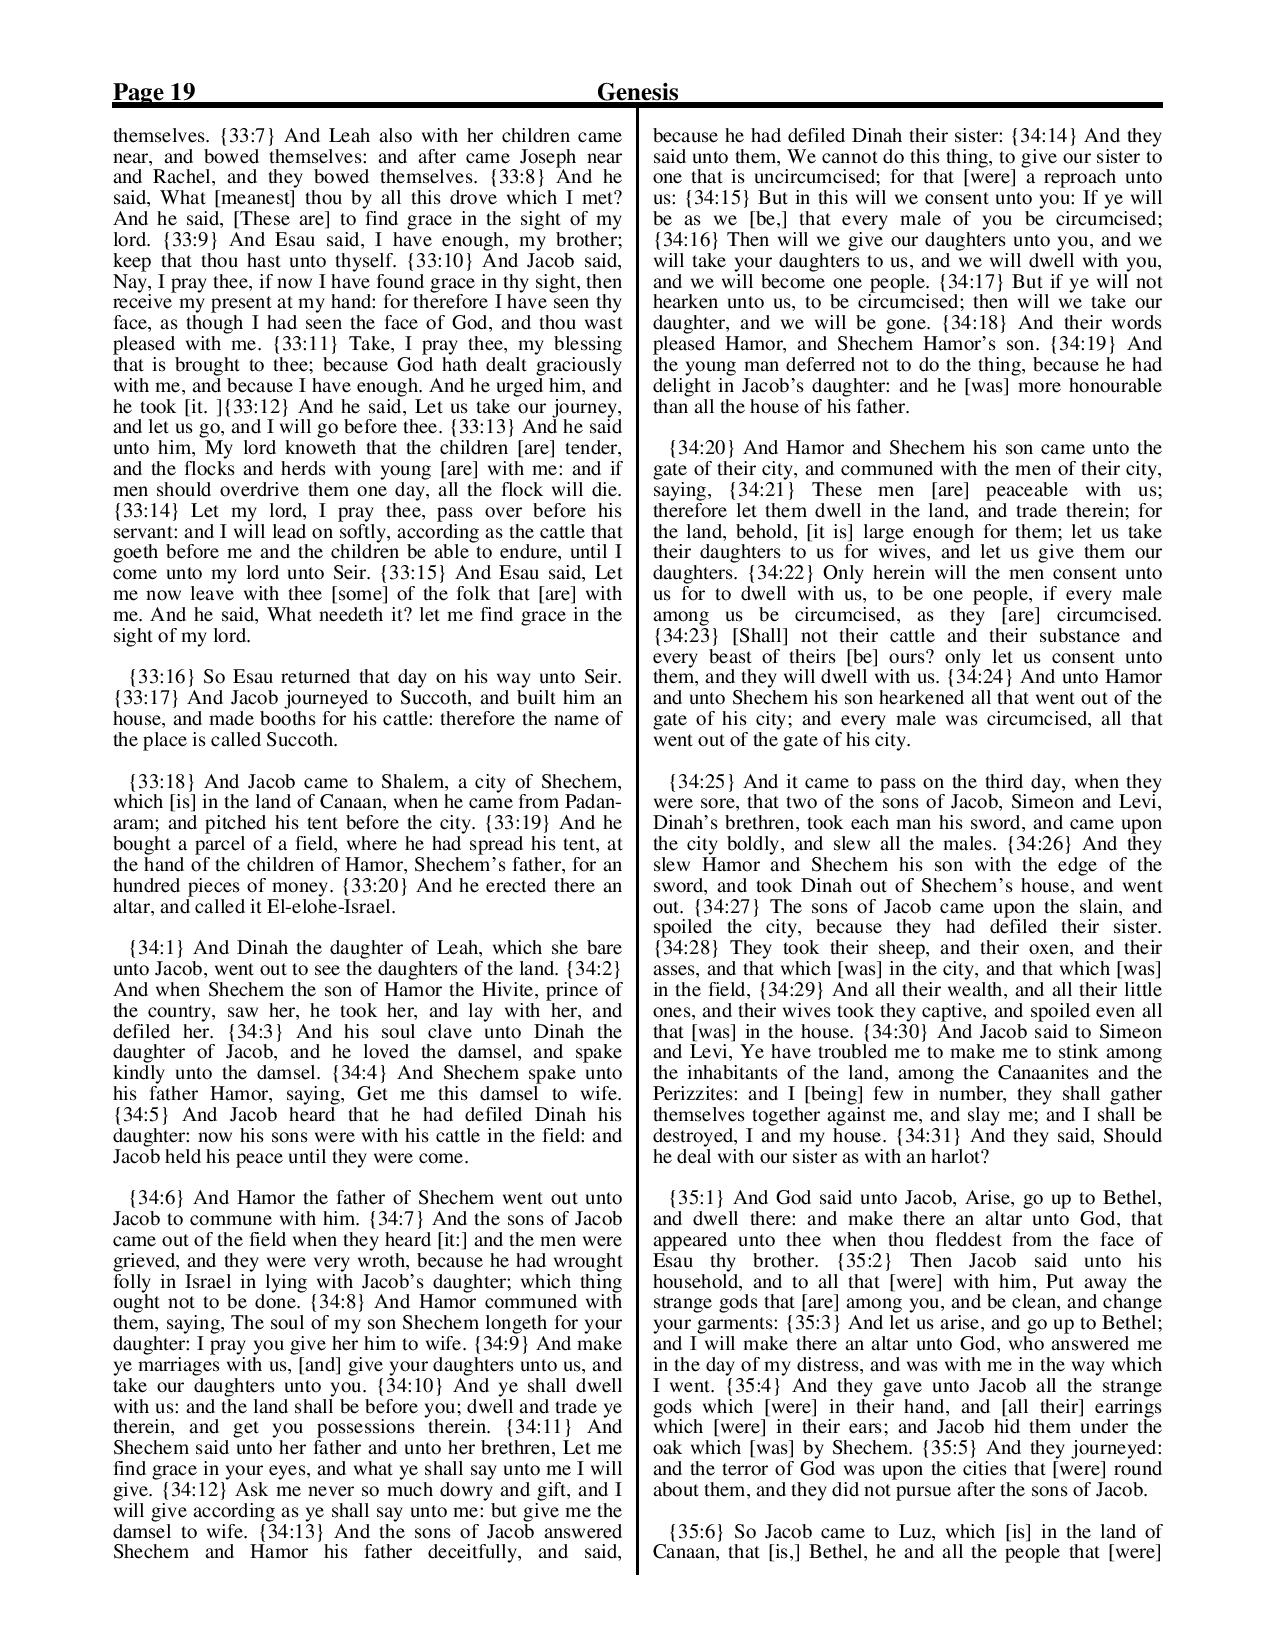 King-James-Bible-KJV-Bible-PDF-page-040